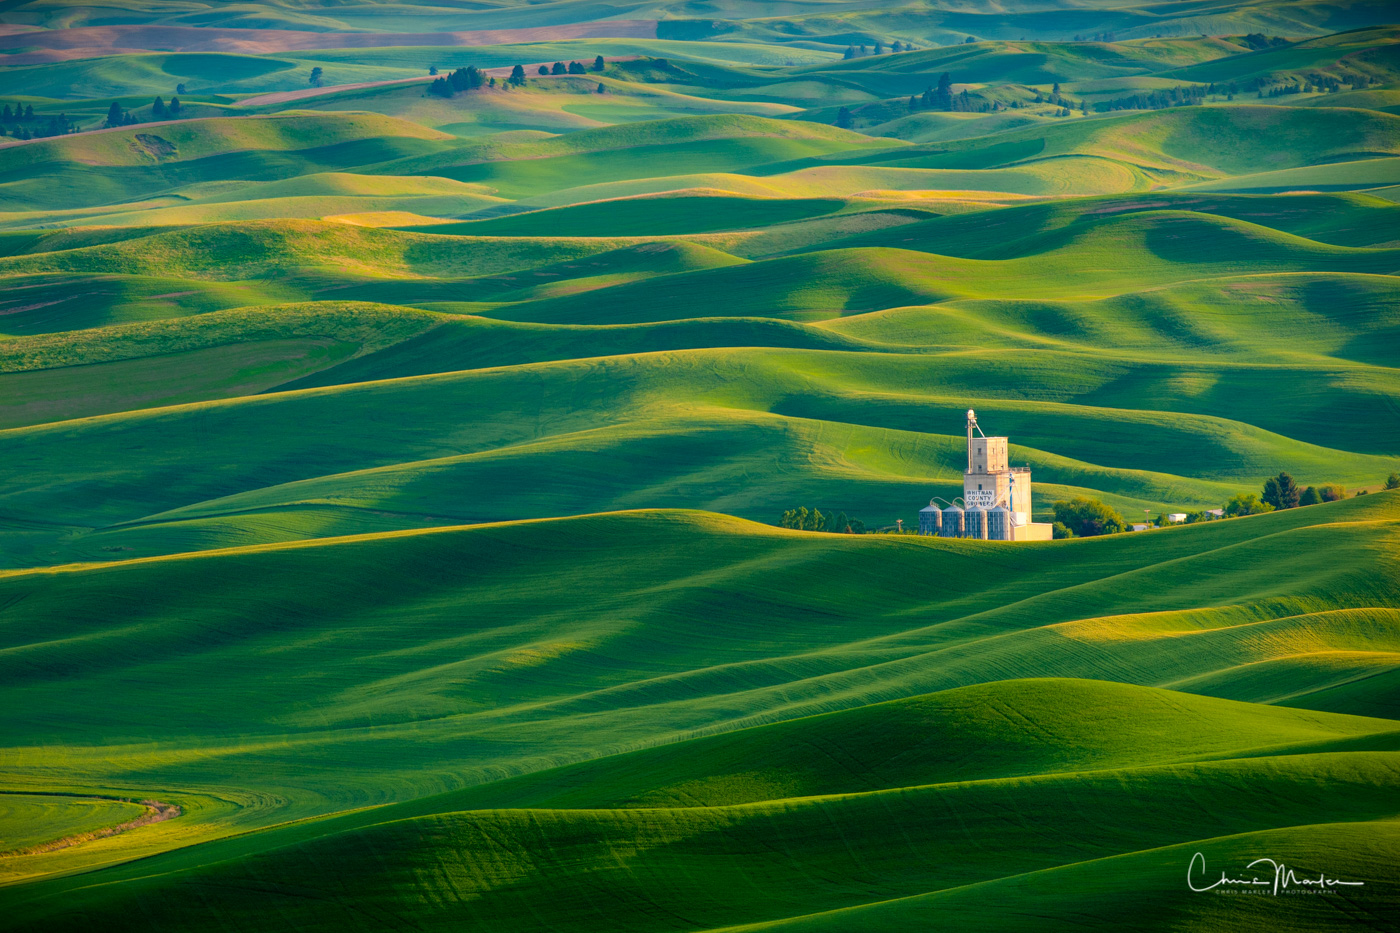 Palouse, Colfax, Washington, Steptoe Butte, rolling hills, fields, wheat, green, homestead, growers, farmers, granary, photo